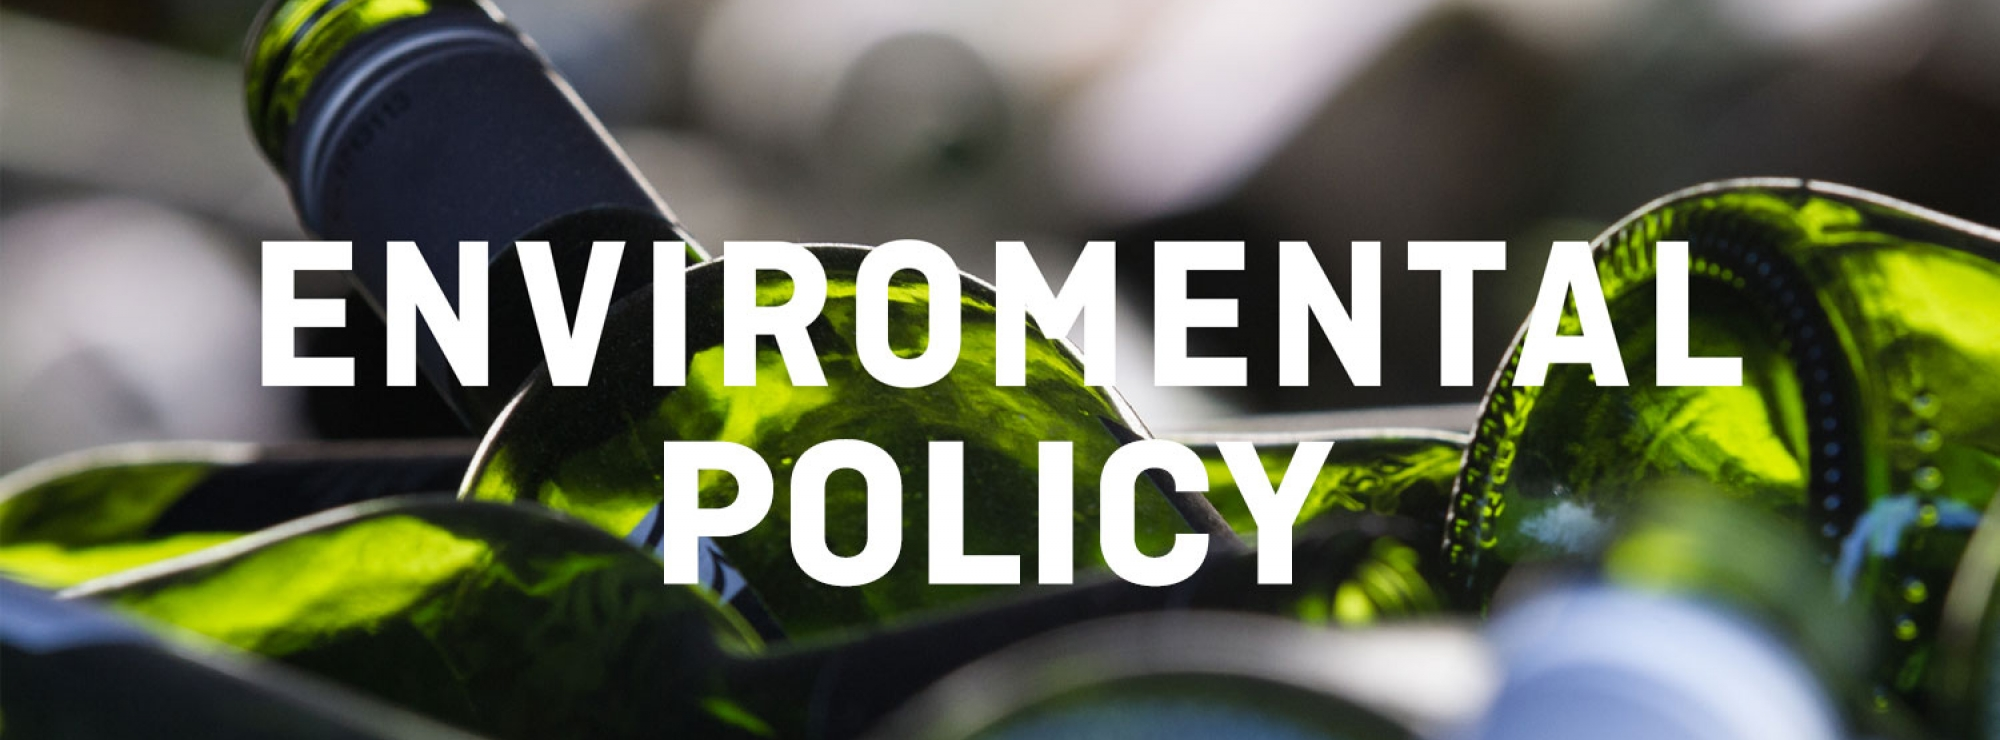 Environmnetla policy